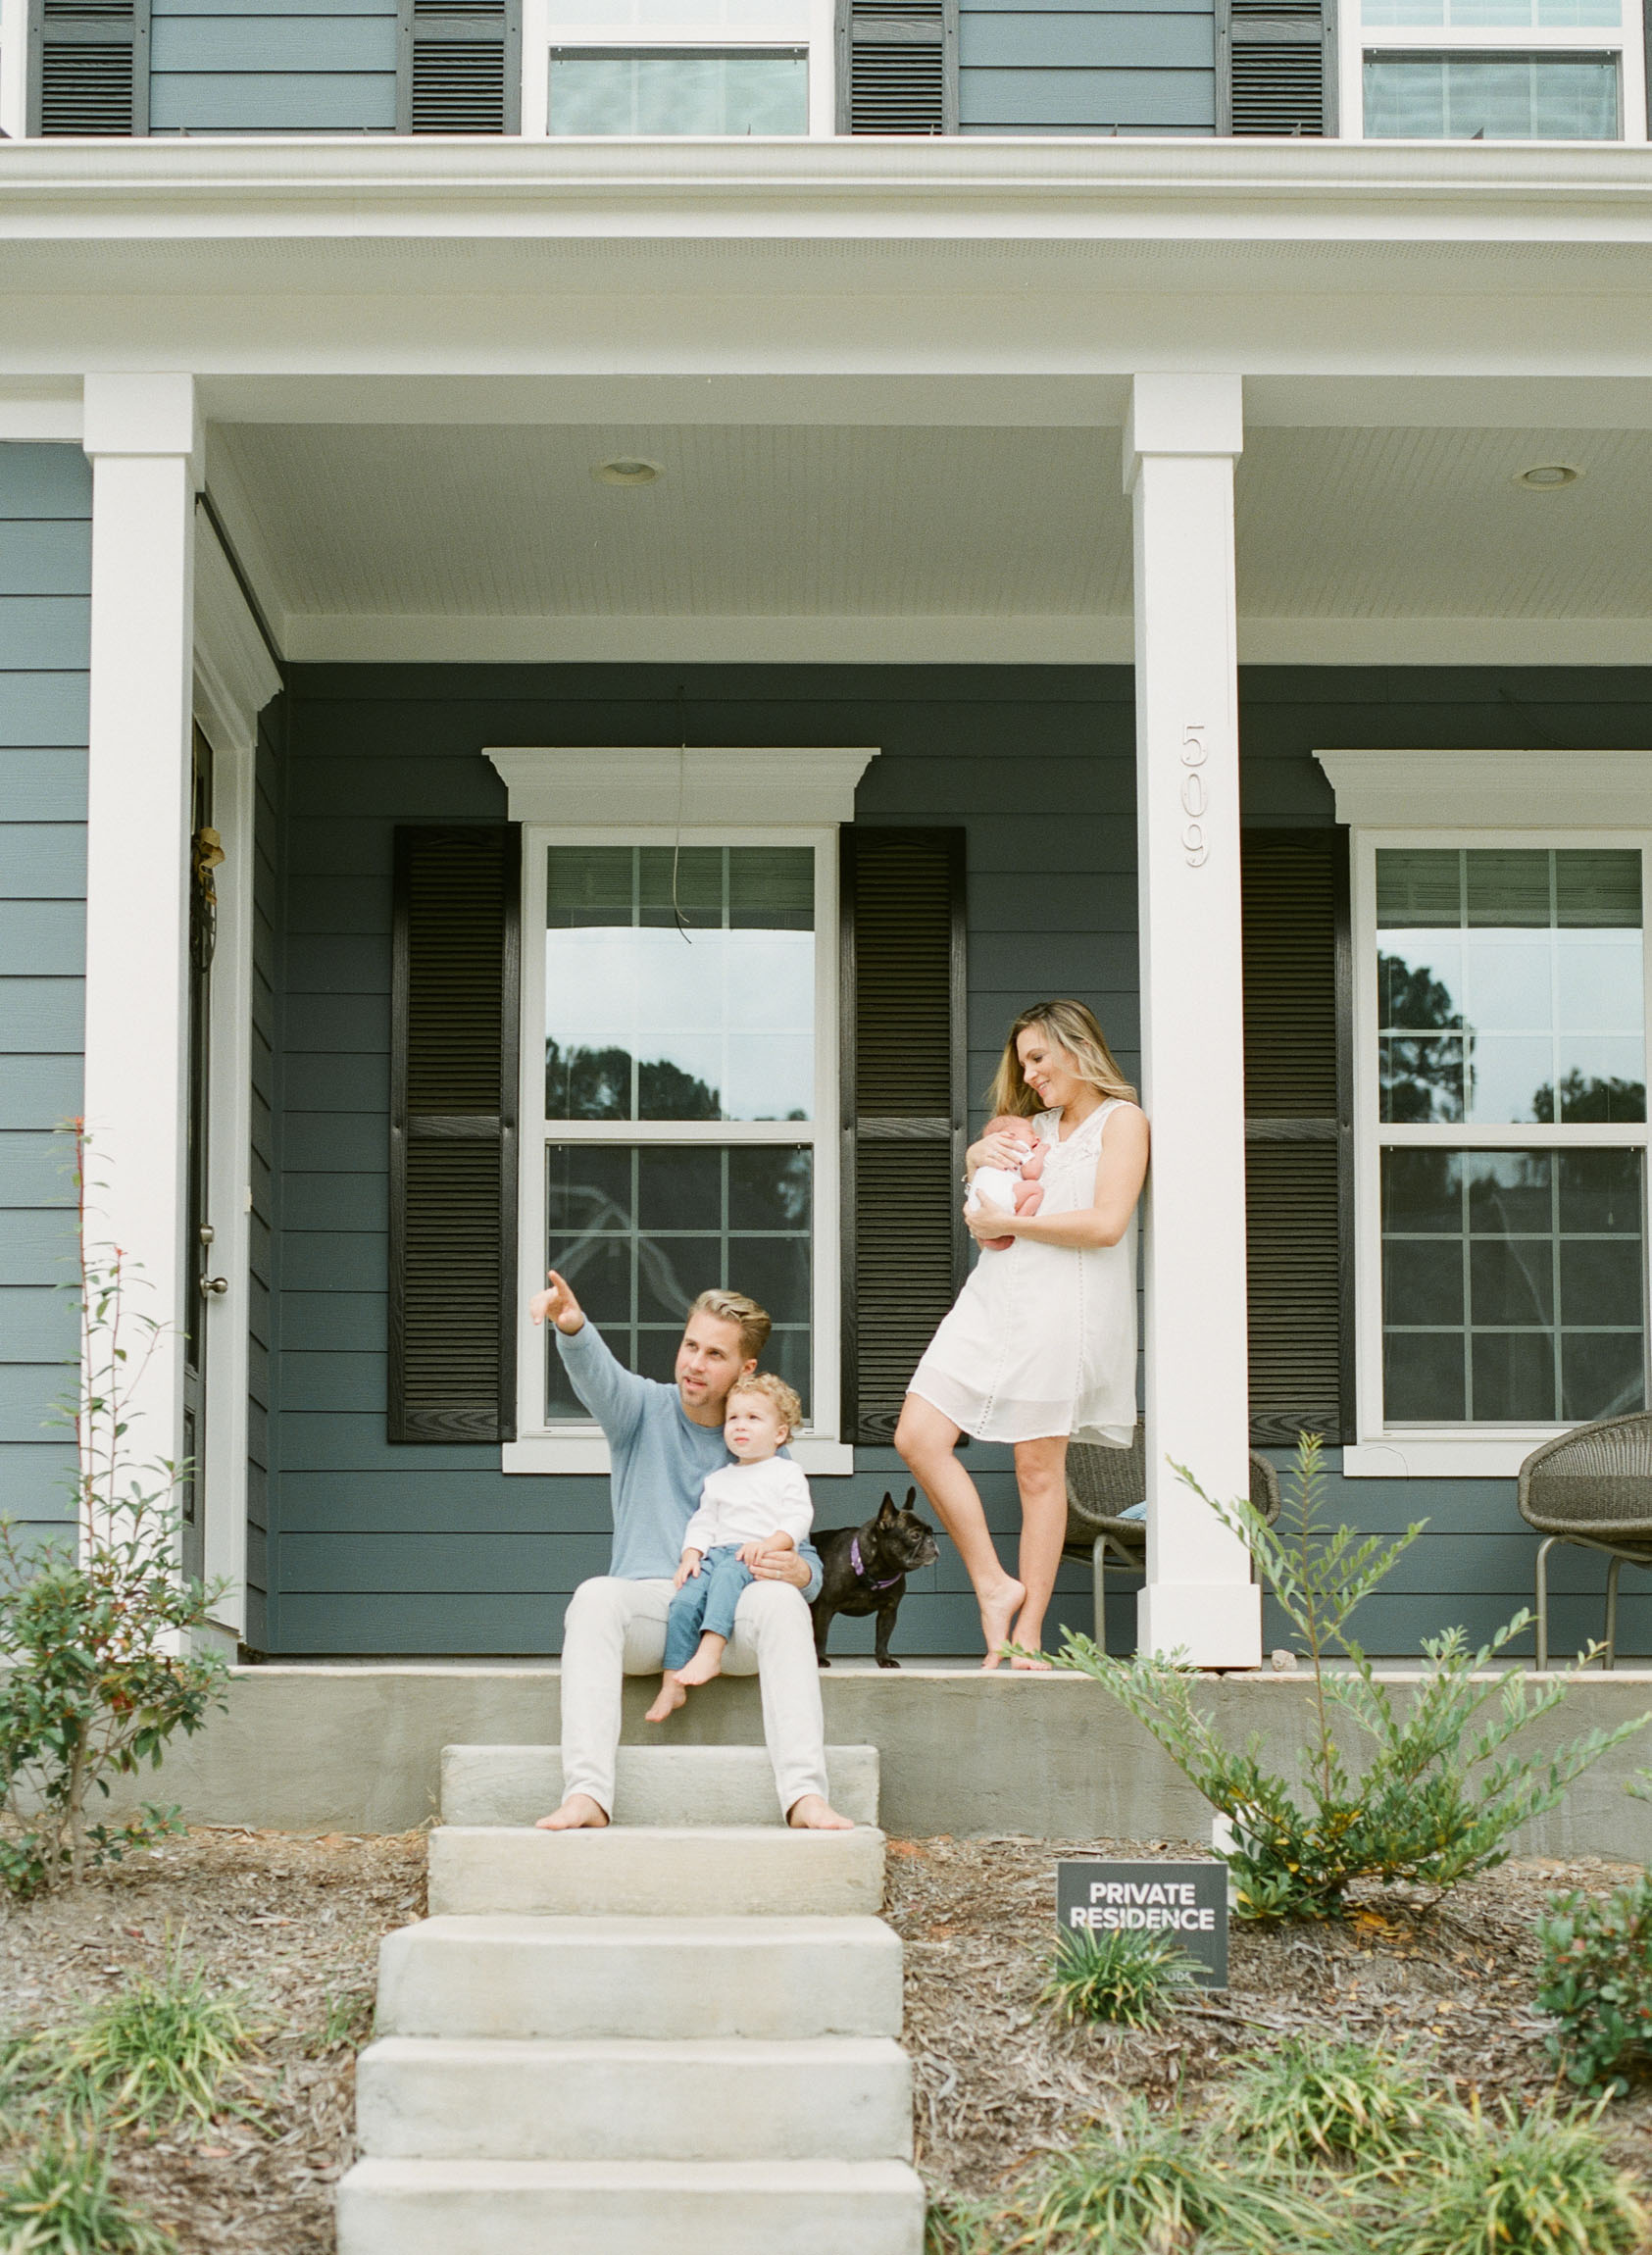 stephanie-bryan-photography-raleigh-film-family-newborn-client-what-to-wear-002